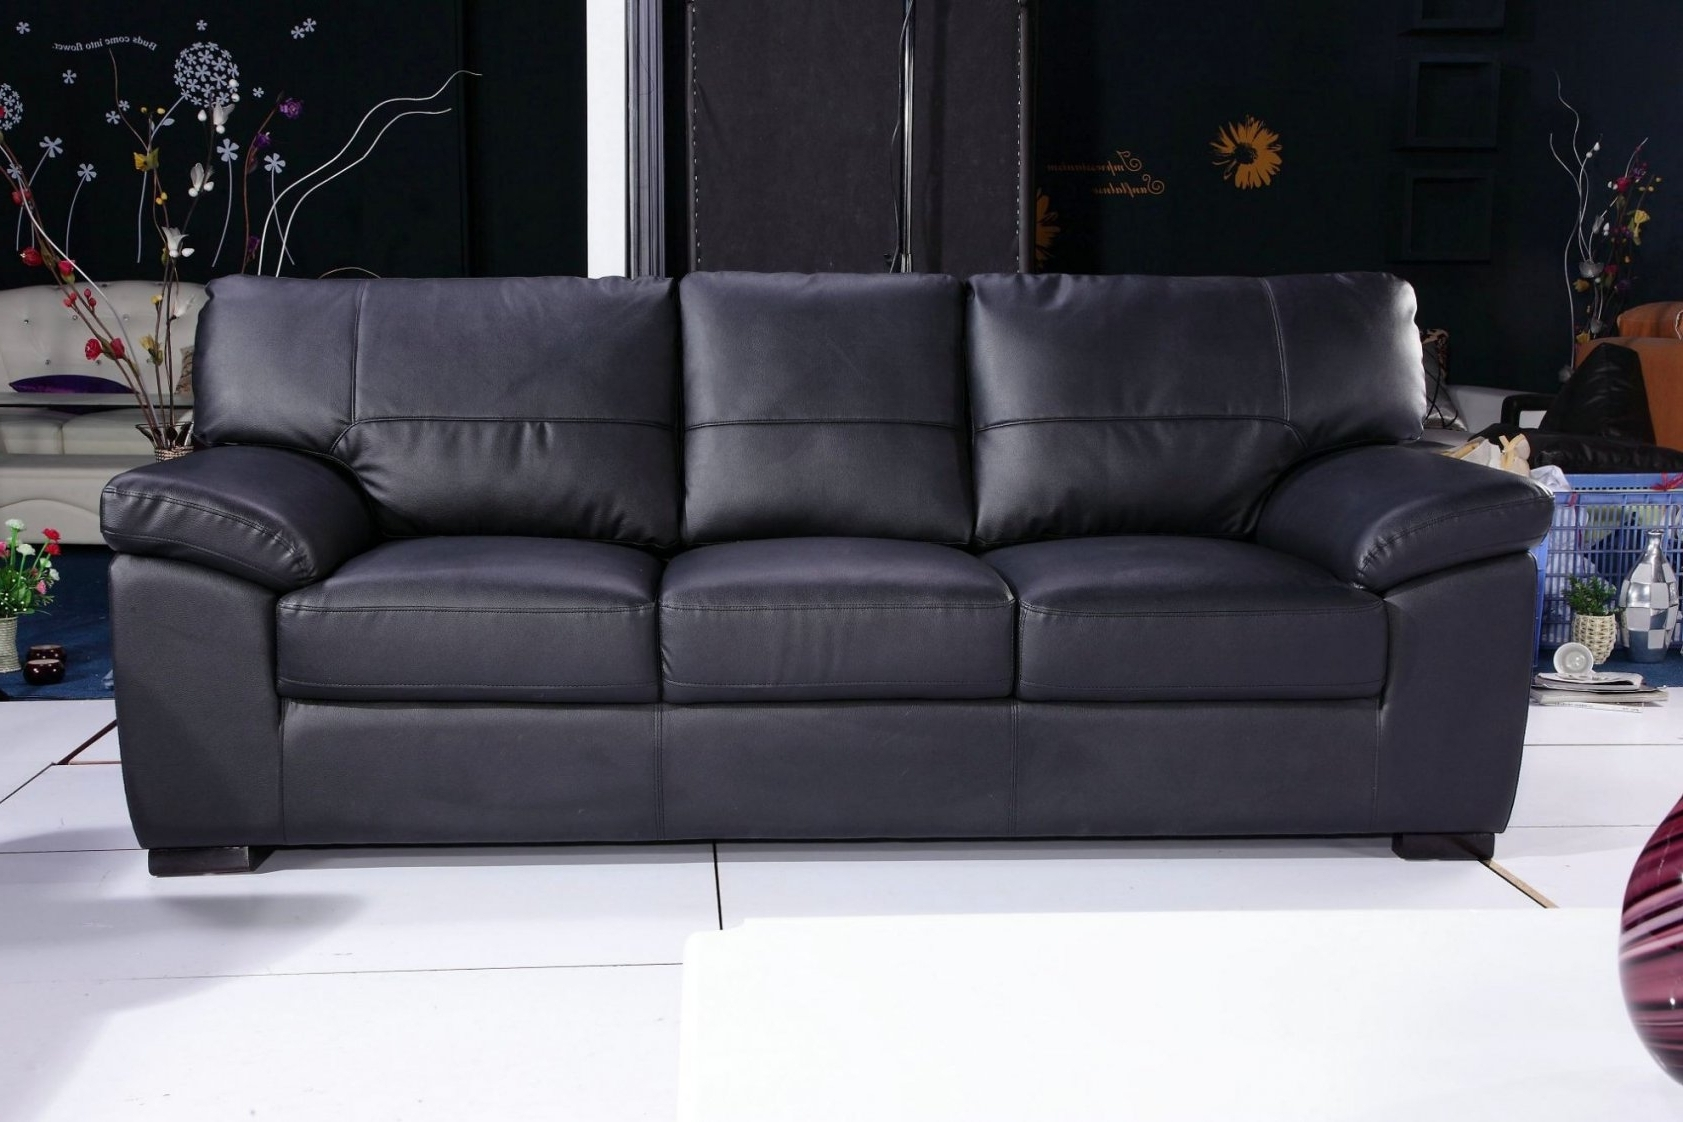 2018 3 Seater Leather Sofas Inside 3 Seater Black Leather Sofa (View 1 of 20)